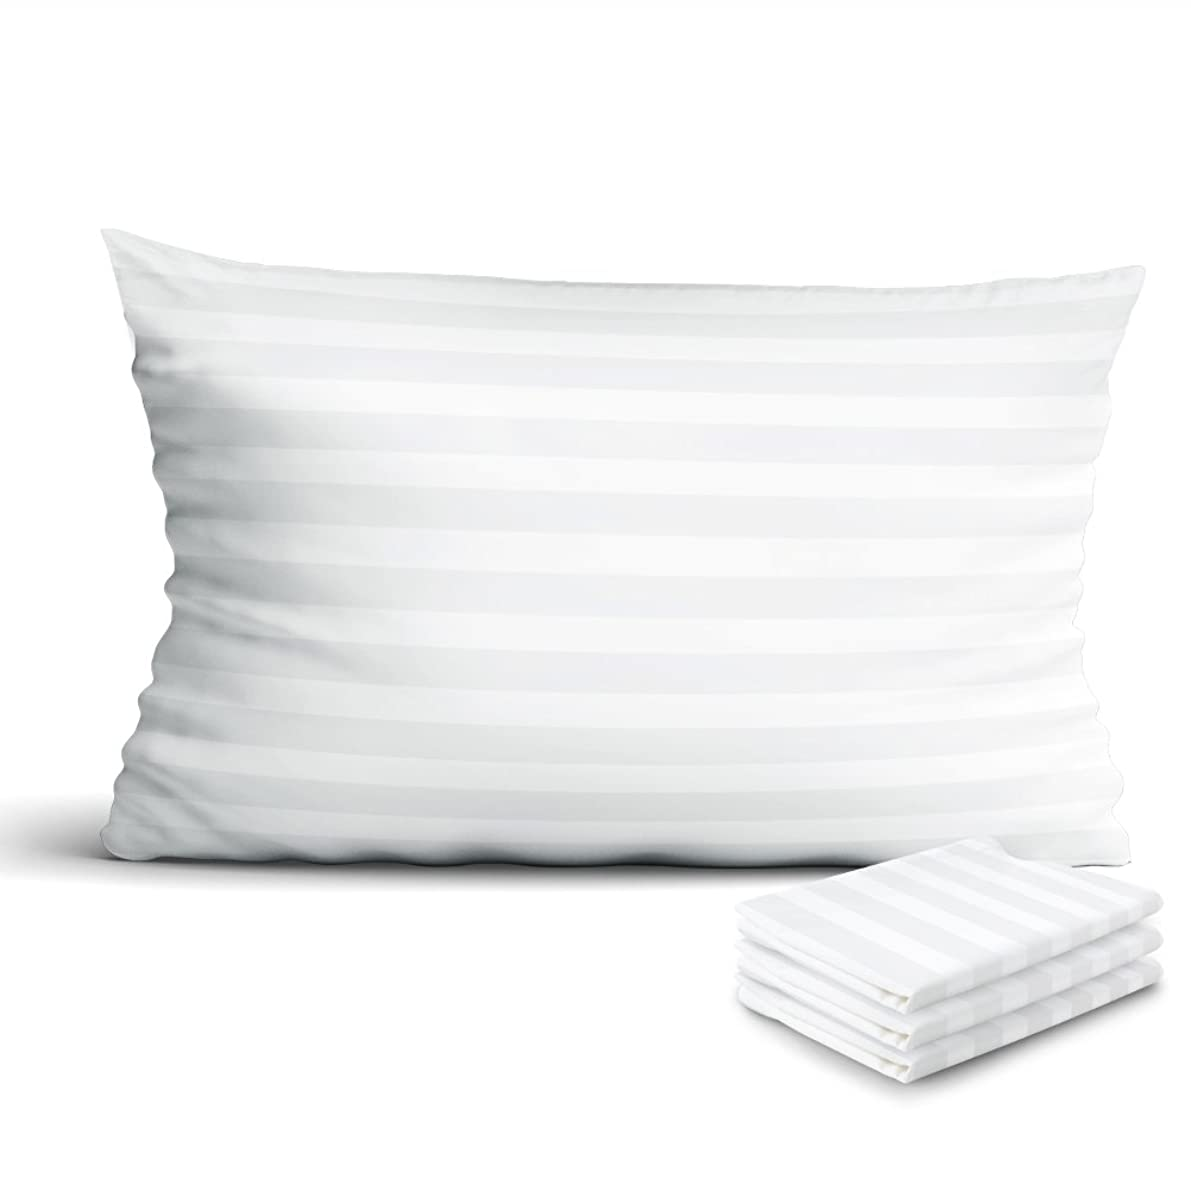 IDEALHOUSE Zippered Pillow Protectors 4-Pack,100% Egyptian Cotton Pillow Cases 300 Thread Count Soft Sateen Pillow Covers 20 x 30 inch(Queen)